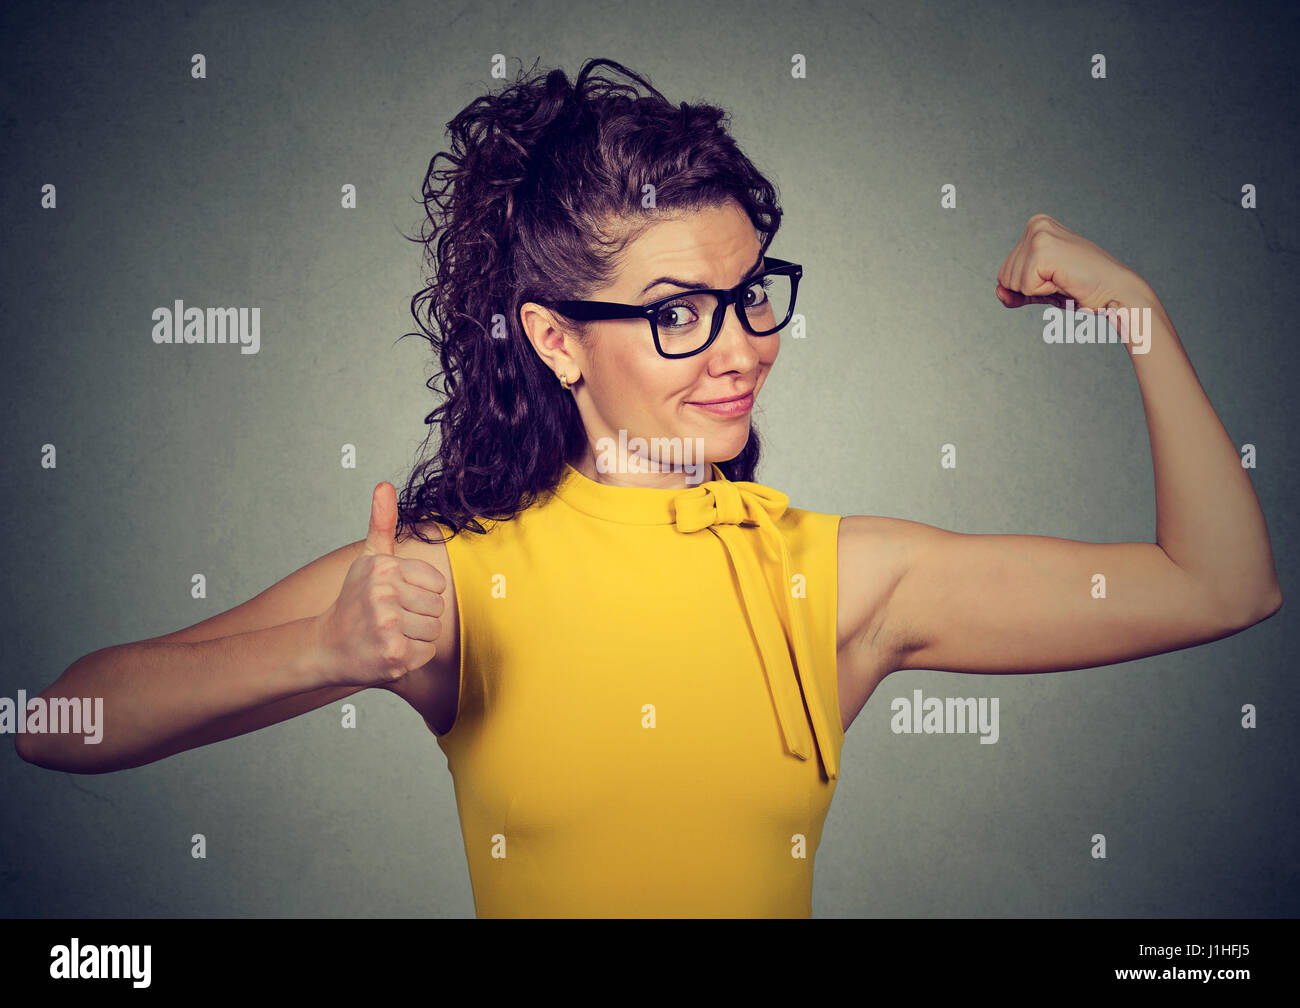 Young happy woman flexing muscles showing thumbs up isolated on gray background. Positive emotion facial expression. - Stock Image